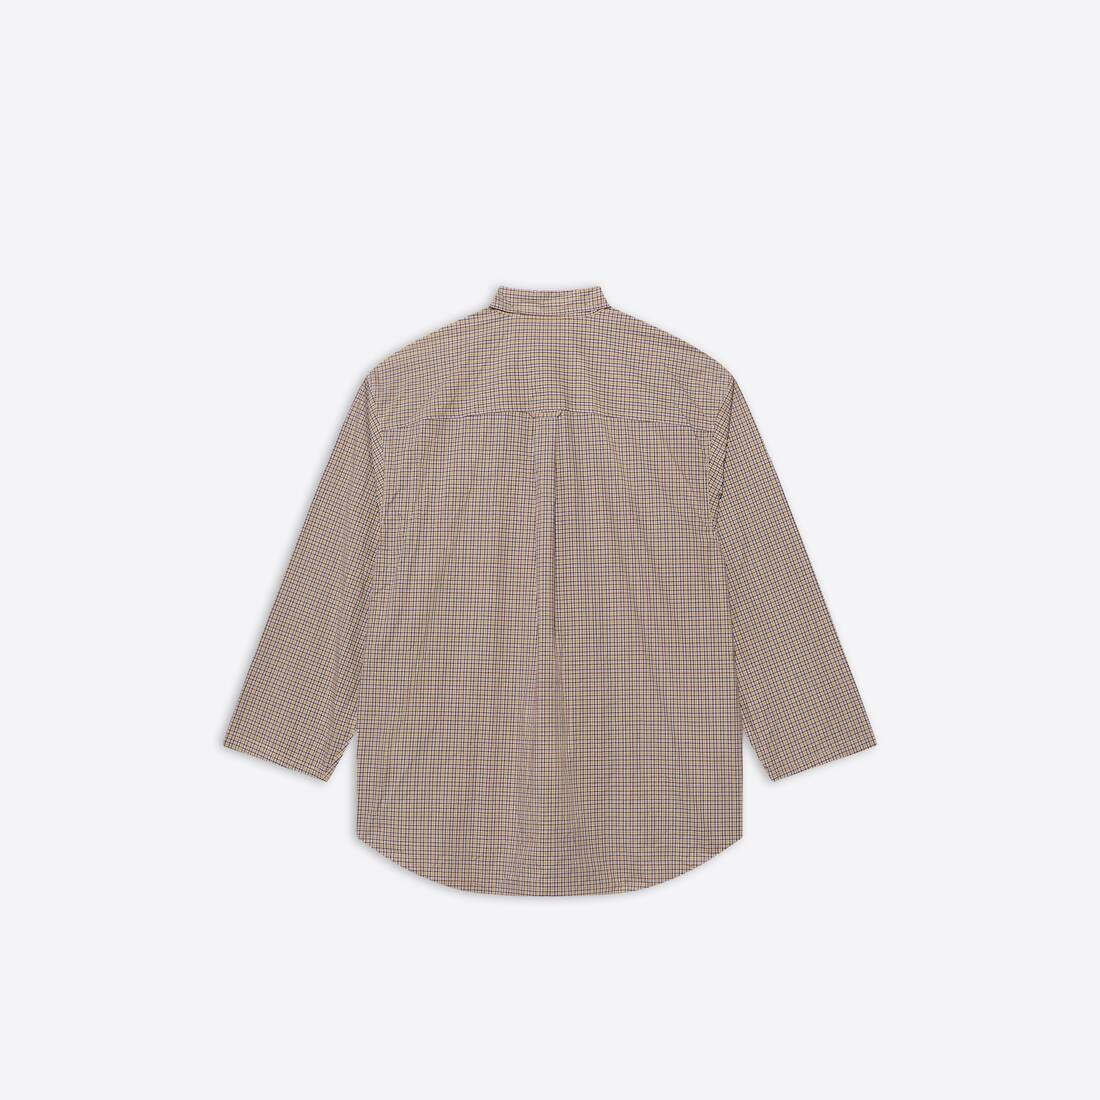 Display zoomed version of oversize button-down shirt 2